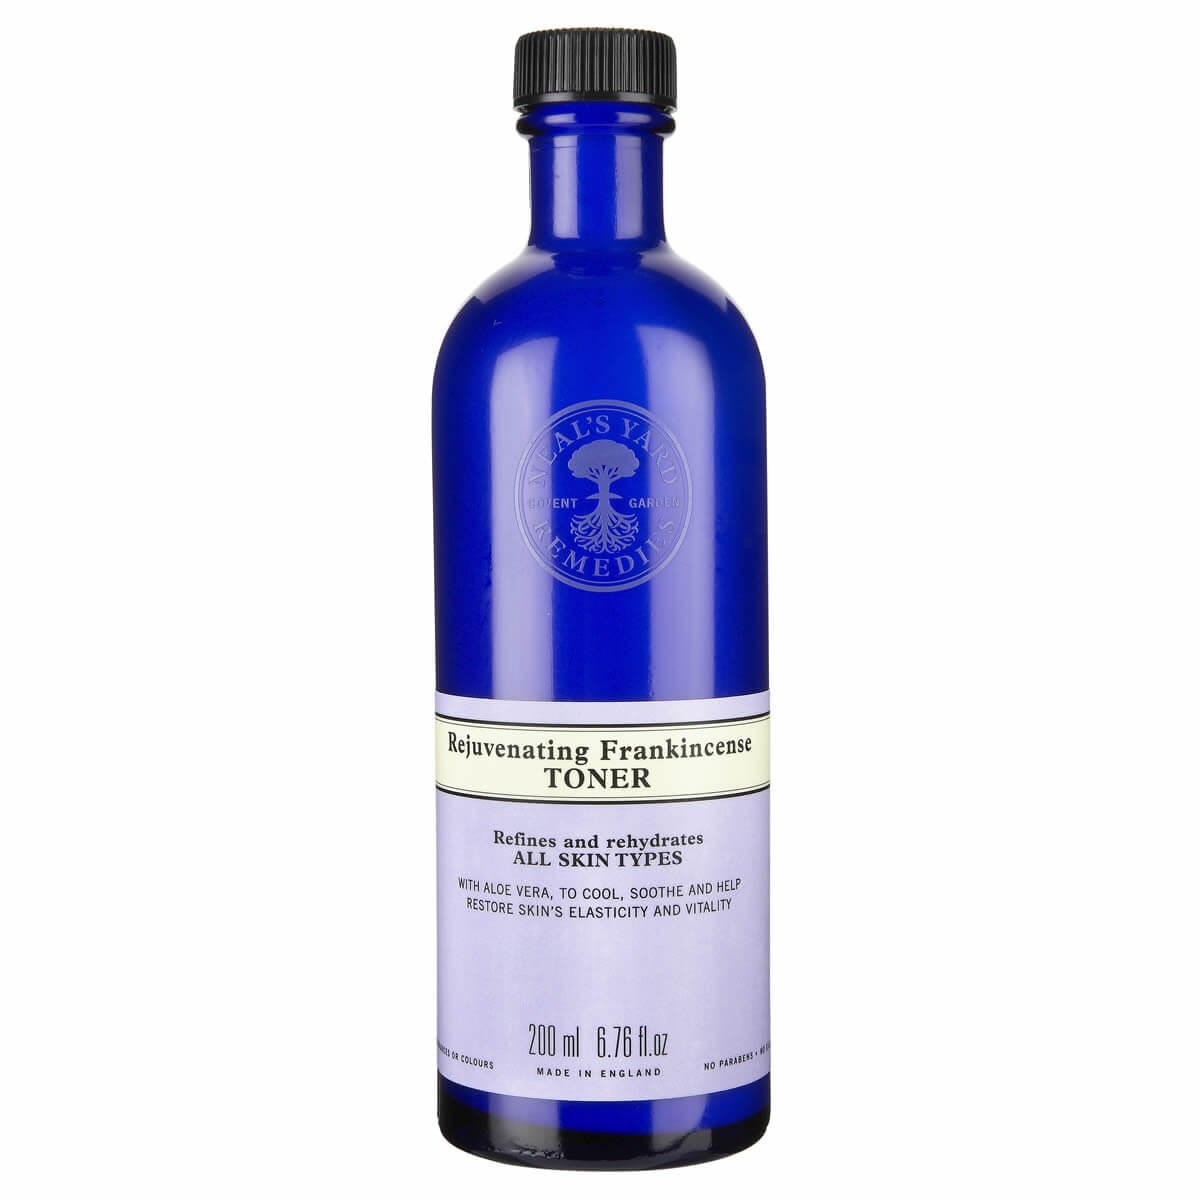 Neal's Yard Remedies Rejuvenating Frankincense Toner